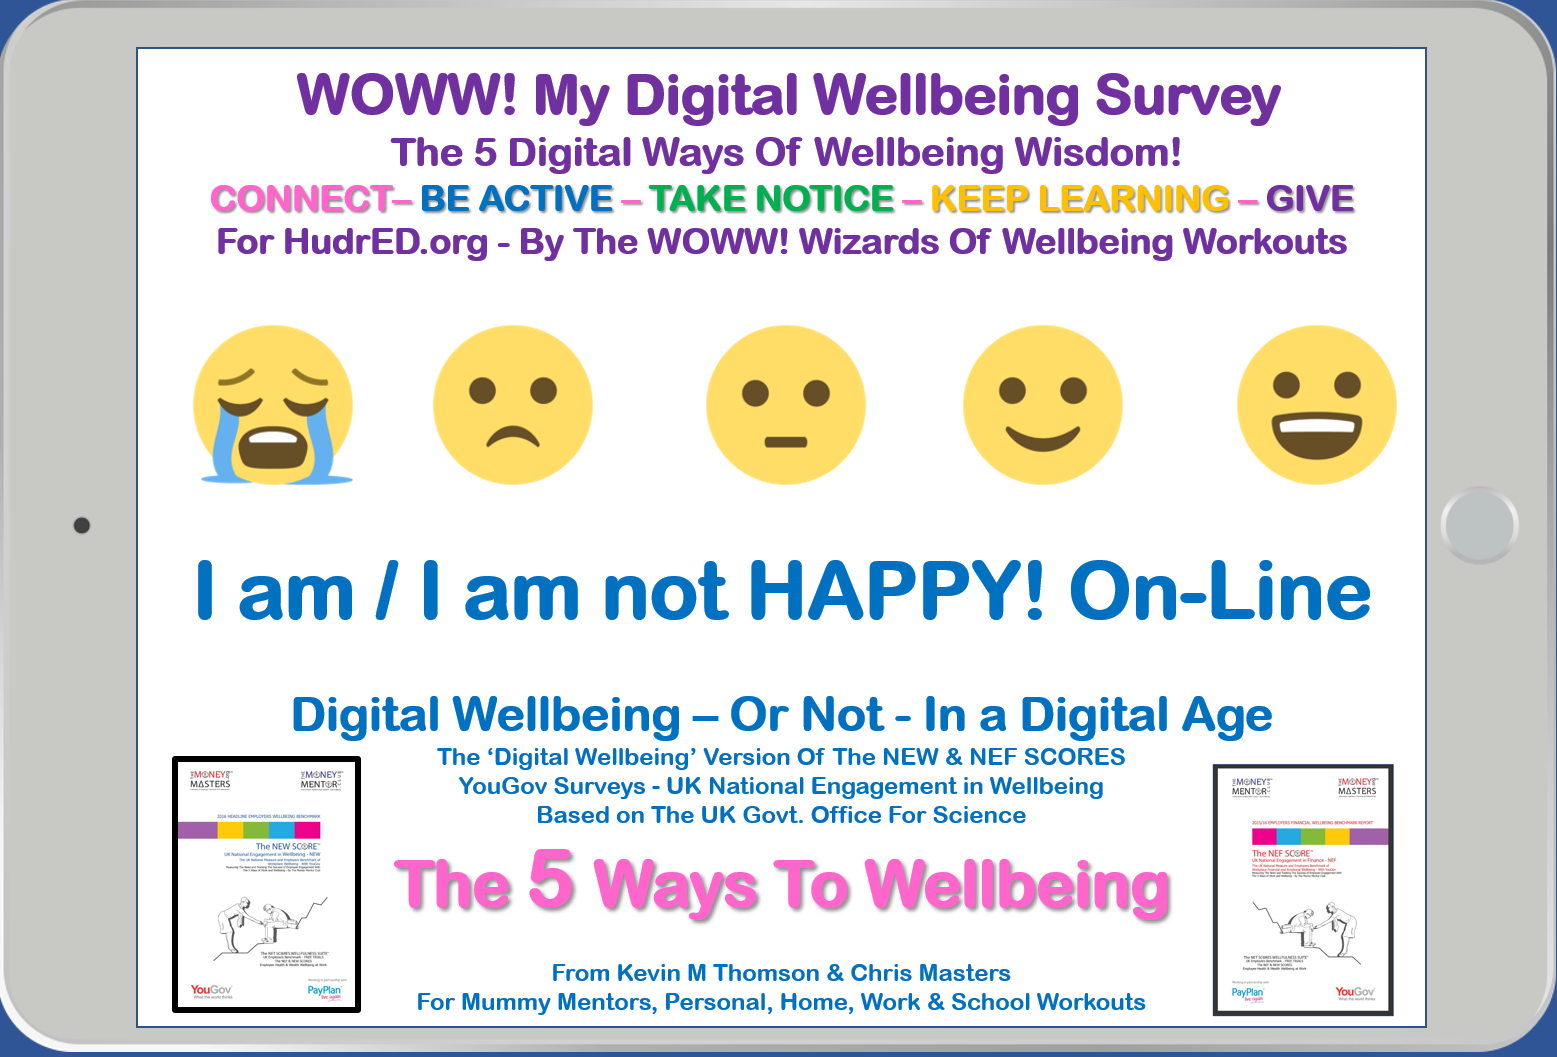 The WOWW! Digital Wellbeing Survey - The 5 Digital Ways Of Wellbeing Wisdom